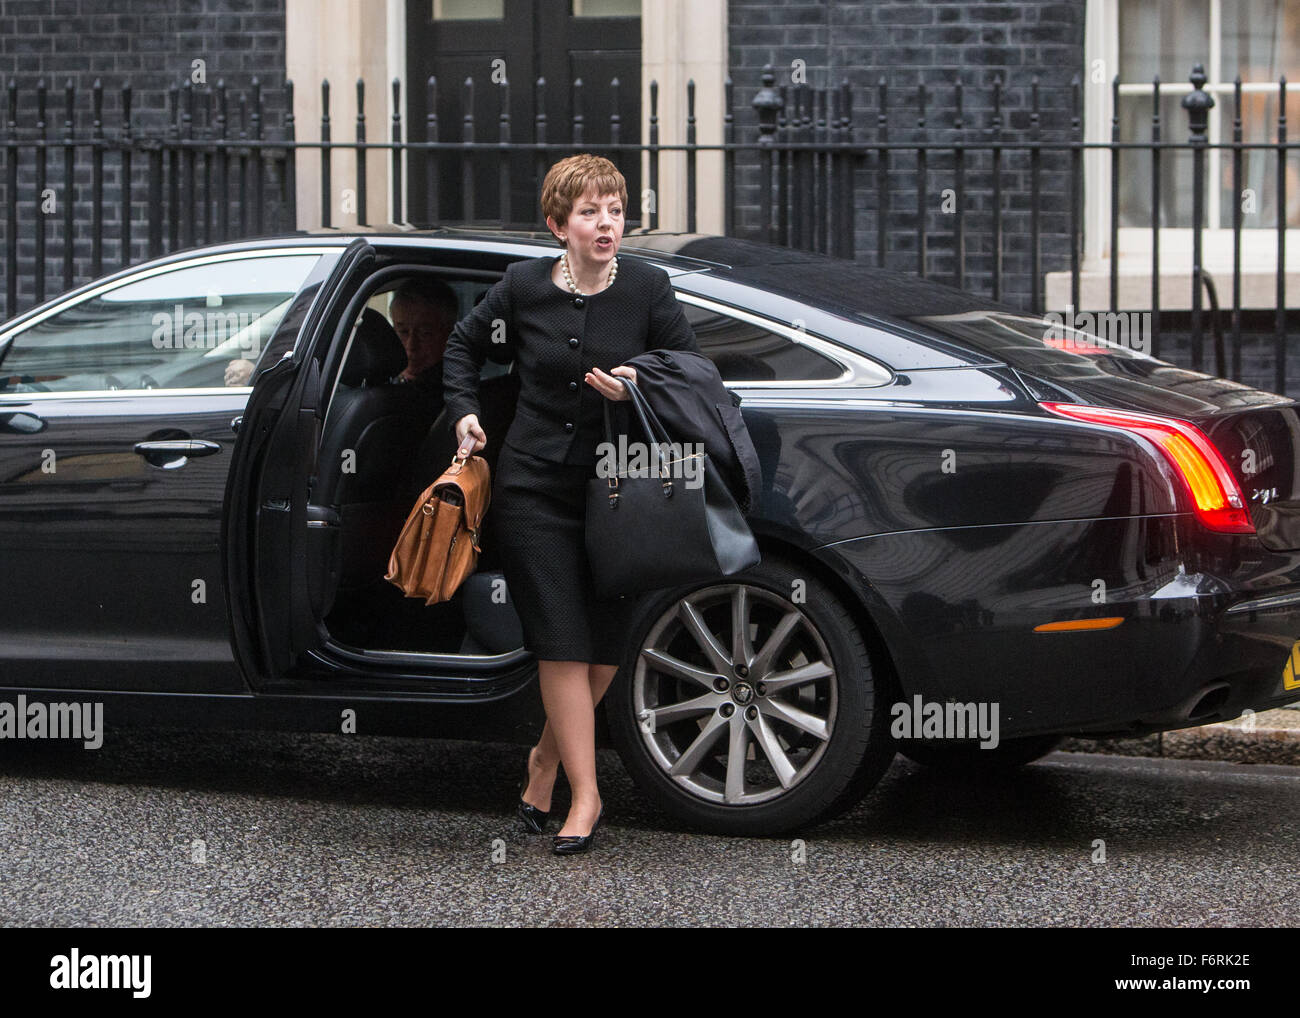 Tina Stowell,Baroness Stowell of Beeston,arrives at number 10 Downing Street.Baronnes Stowell is Leader of the House - Stock Image